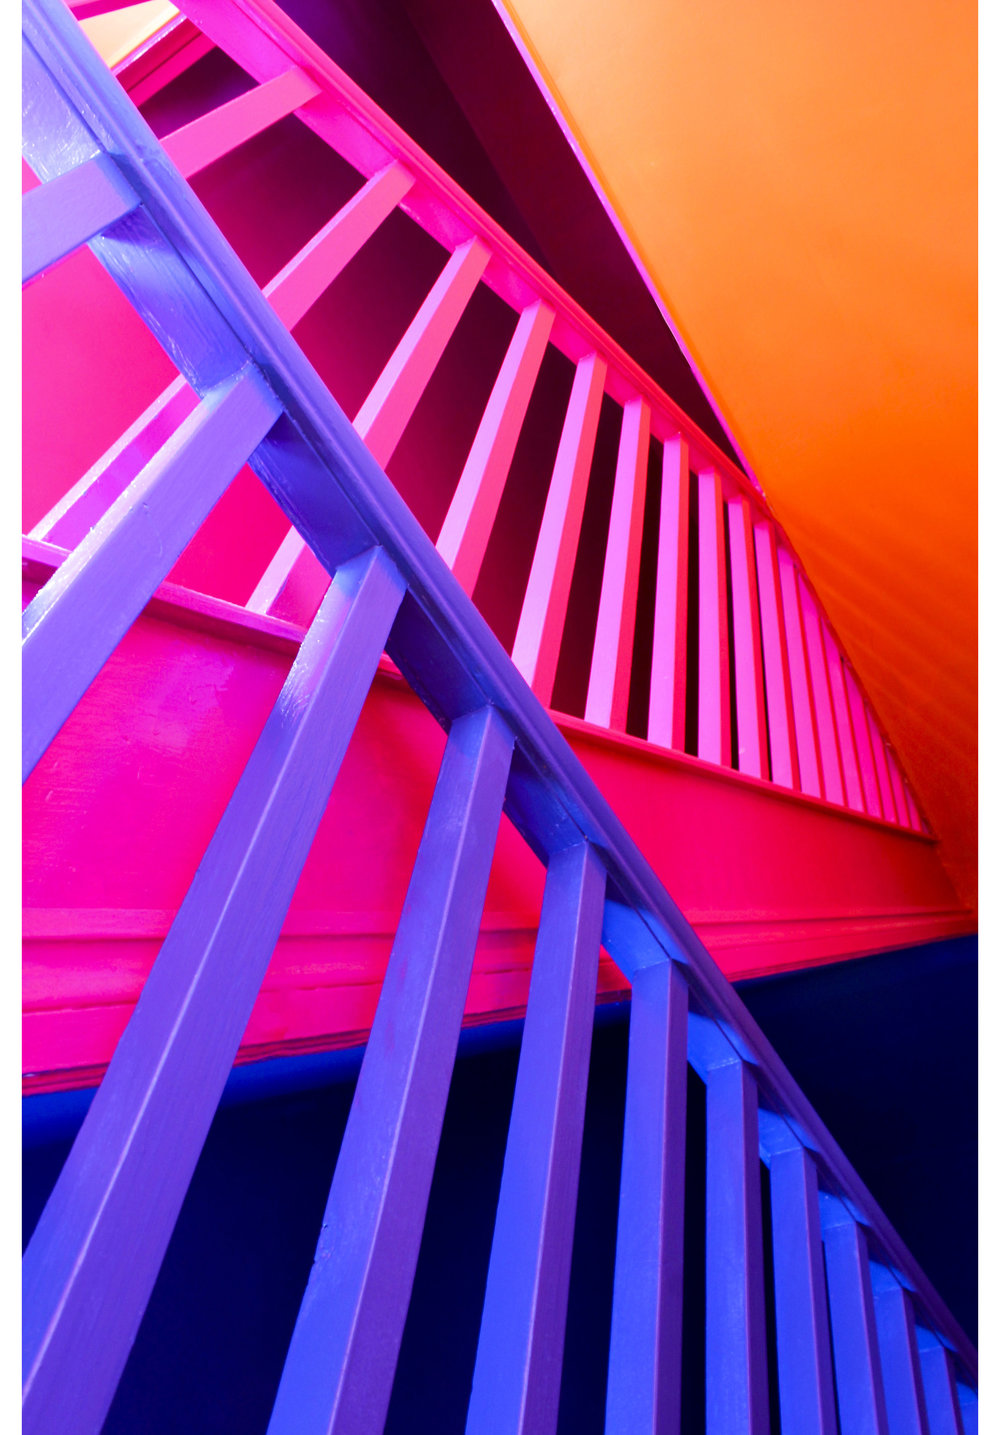 MLH Staircase Abstract.jpg